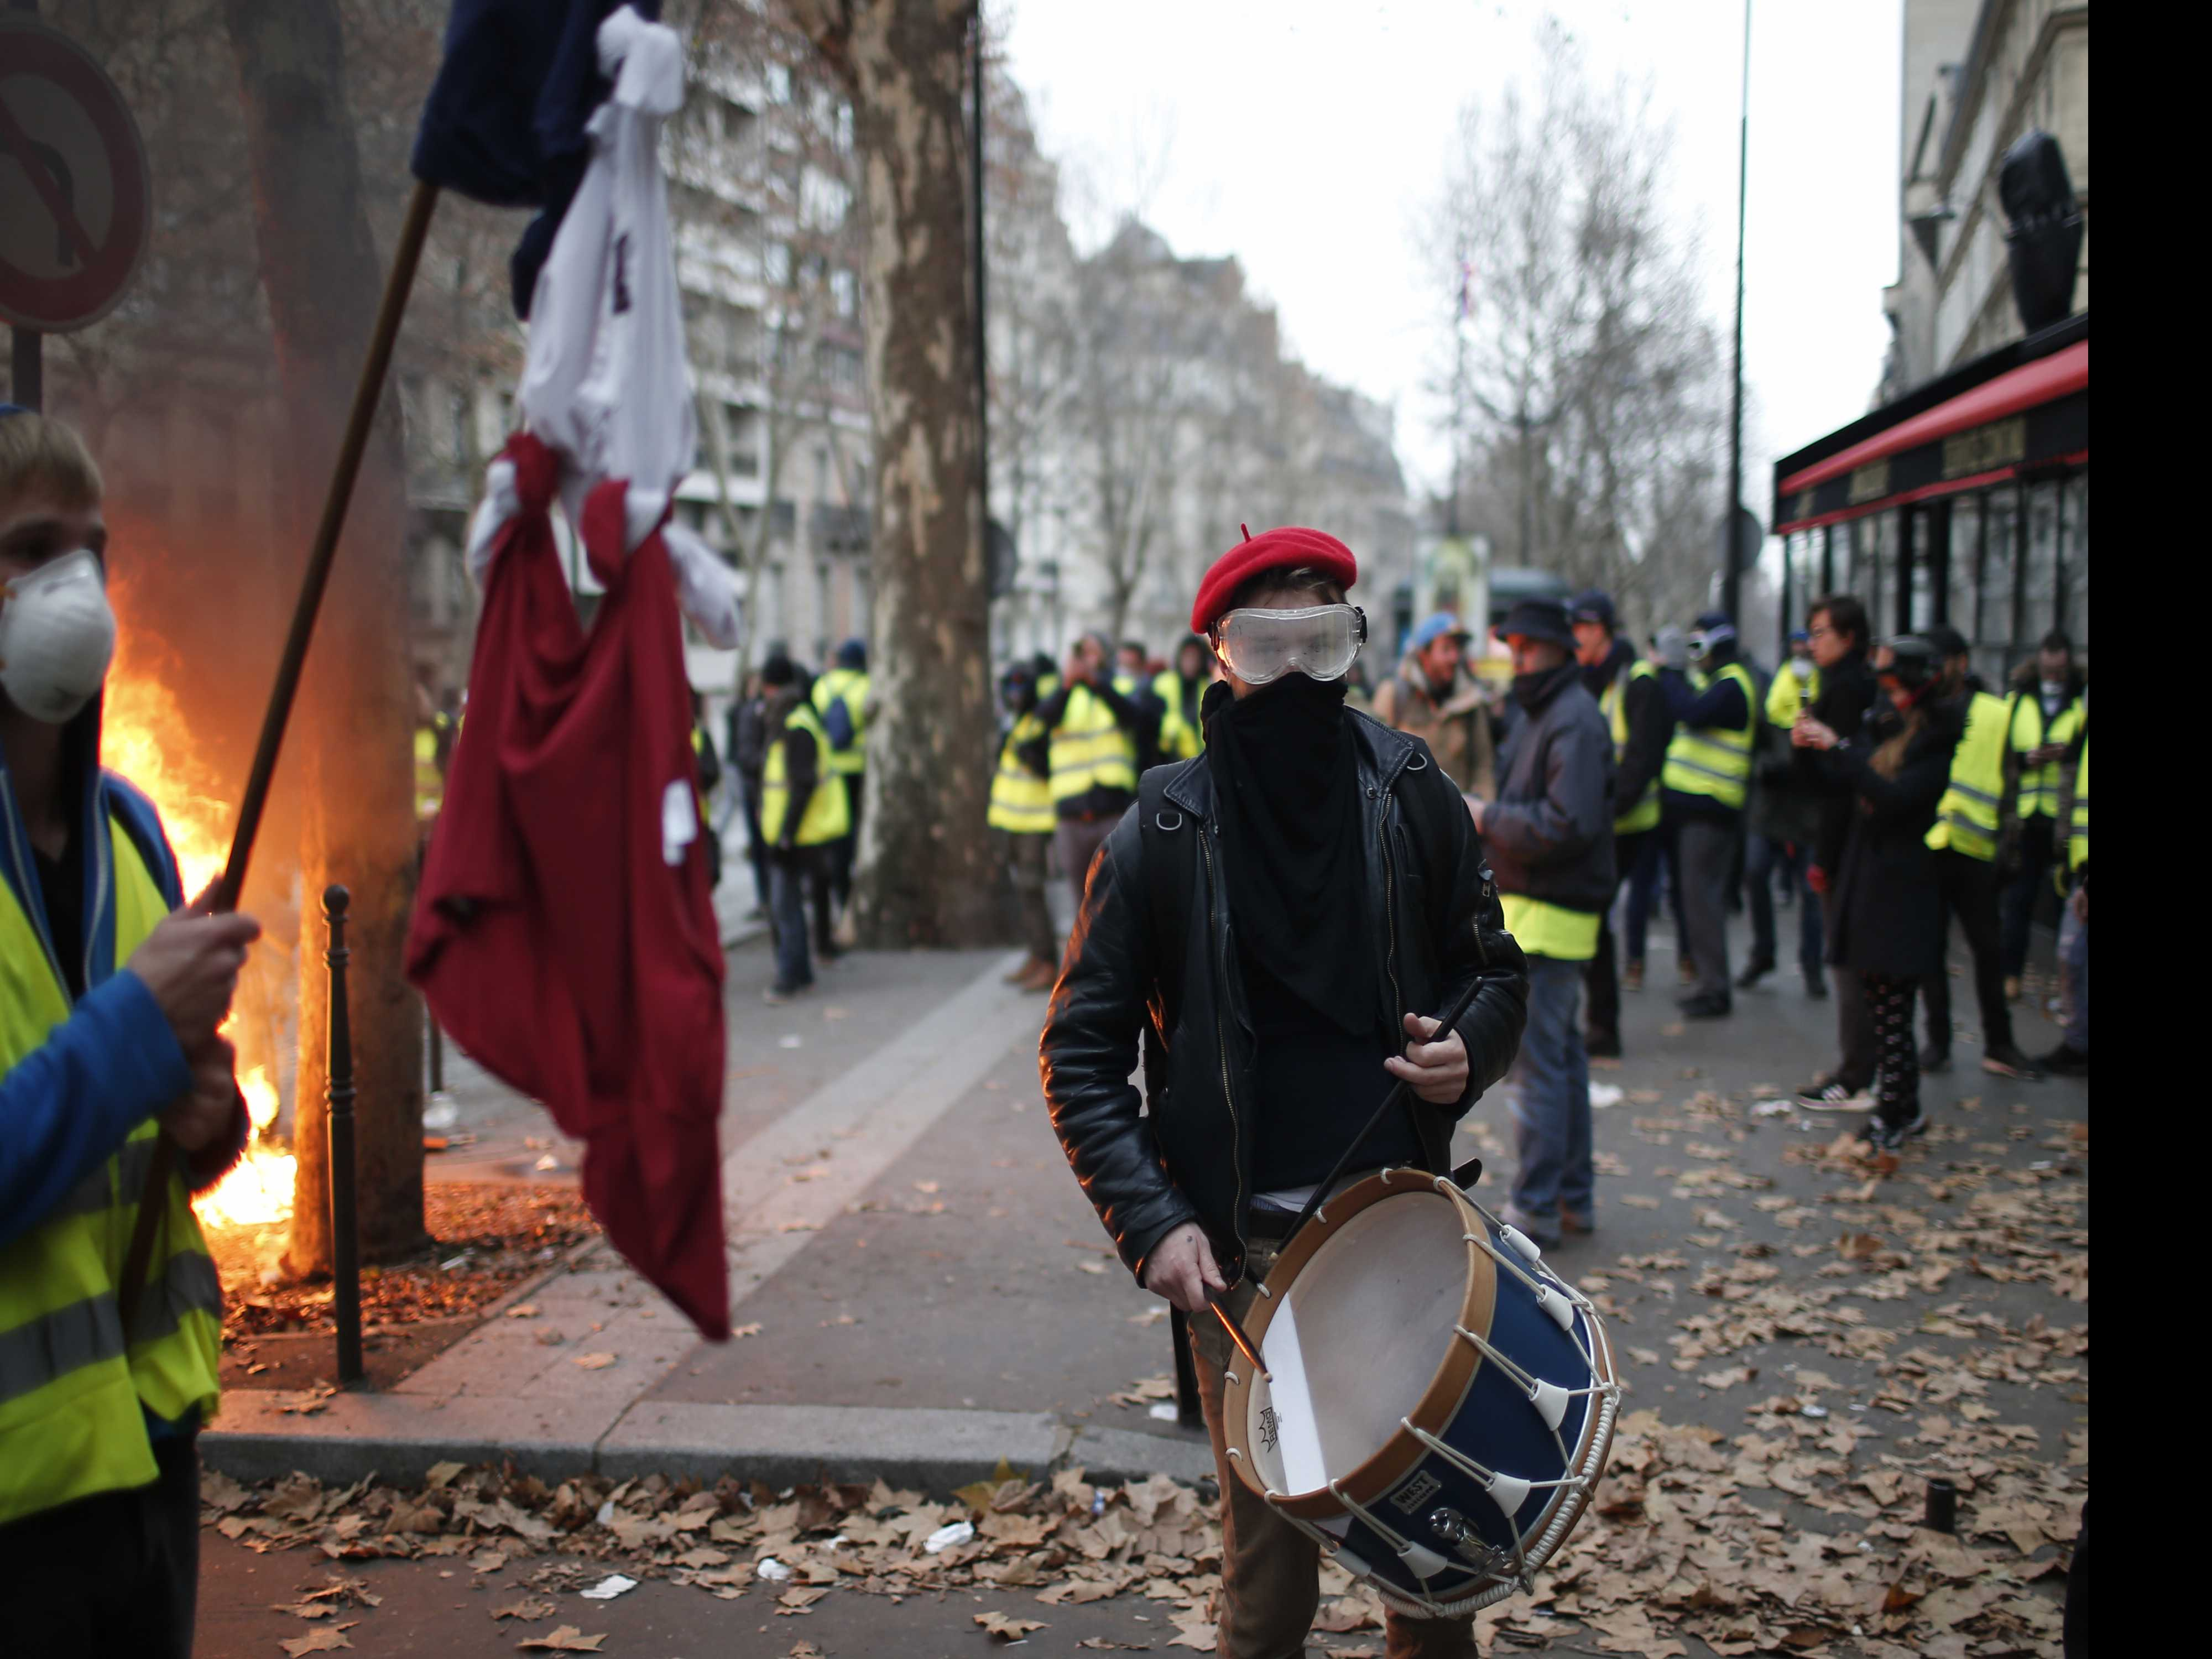 Macron to Break Silence, Address French Nation Amid Protests